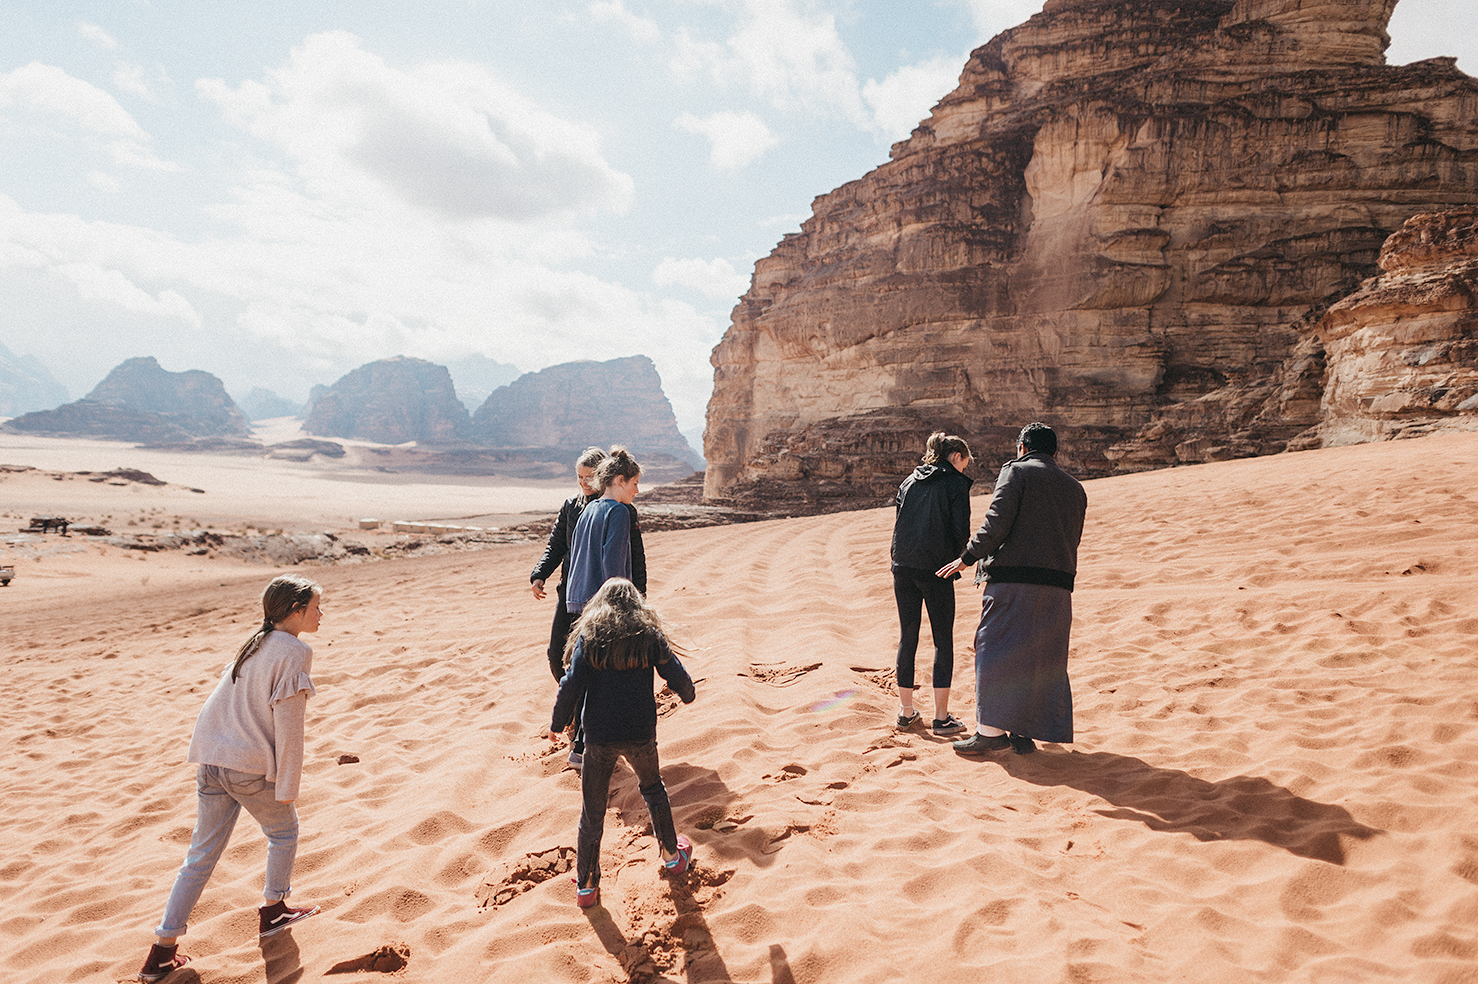 20181125_WADI-RUM-3-and-PETRA_011.jpg